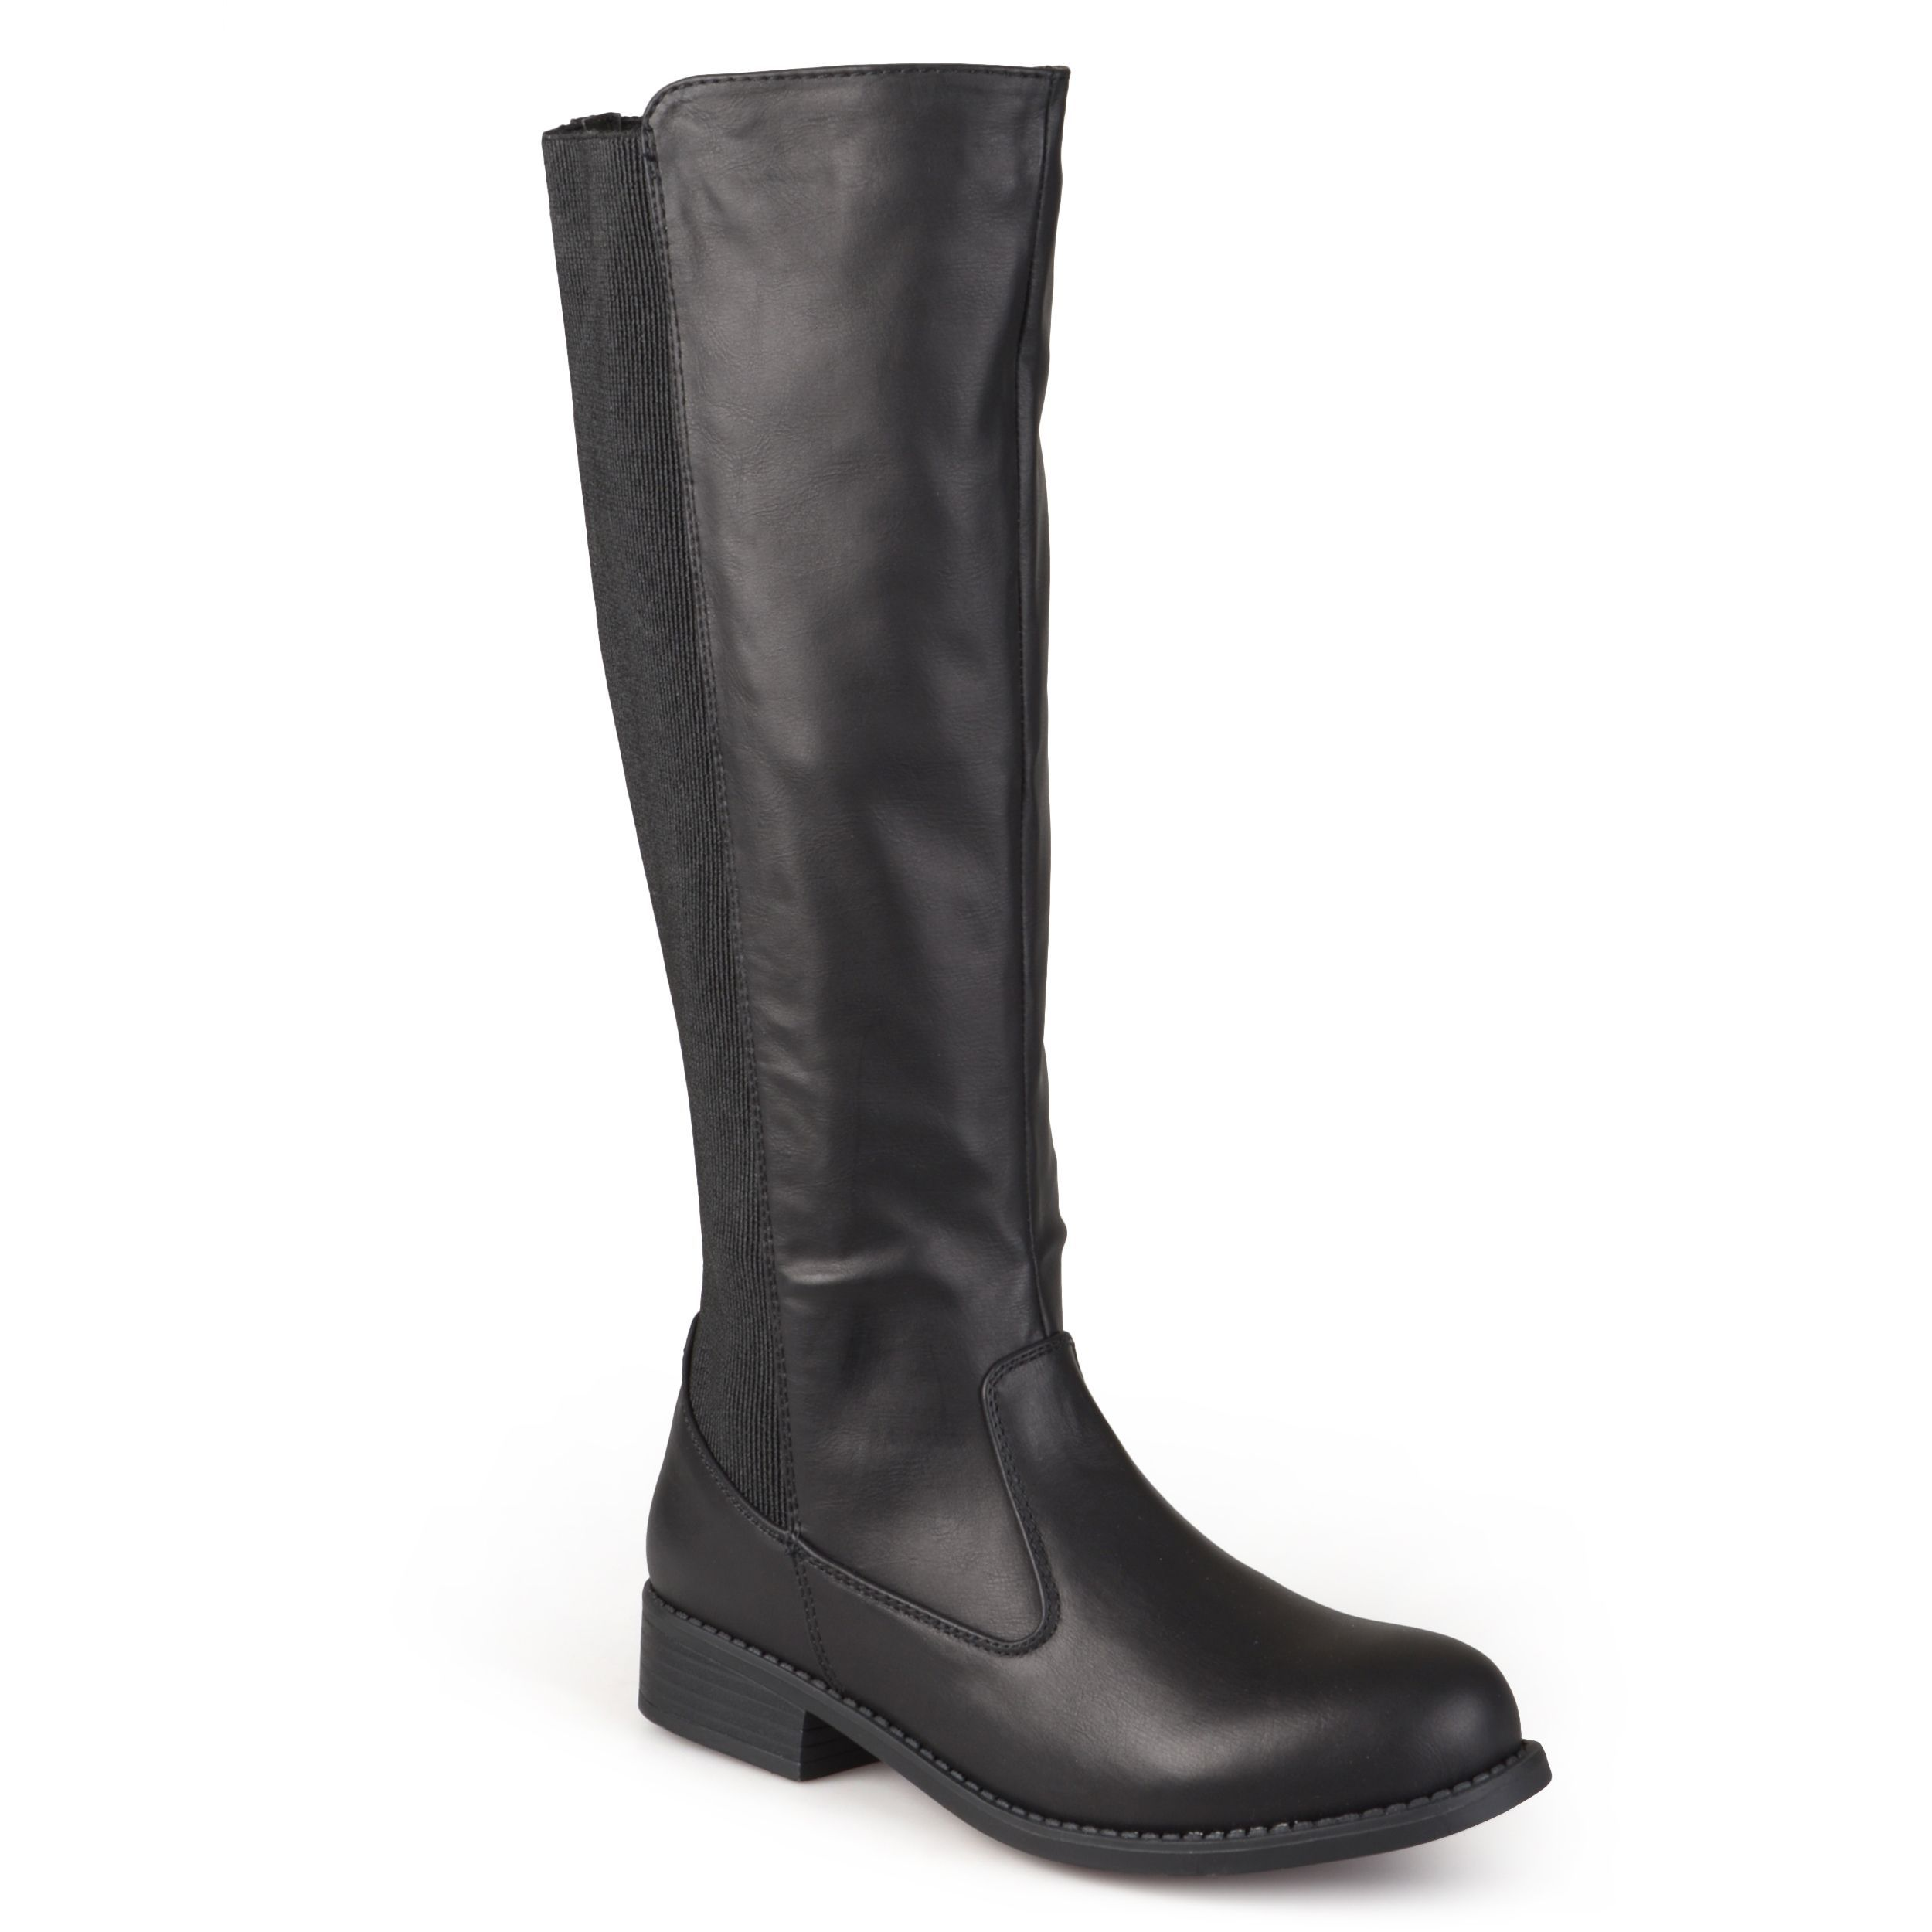 Outlet Journee Collection Women's Studded Knee-High Riding Boots Taupe